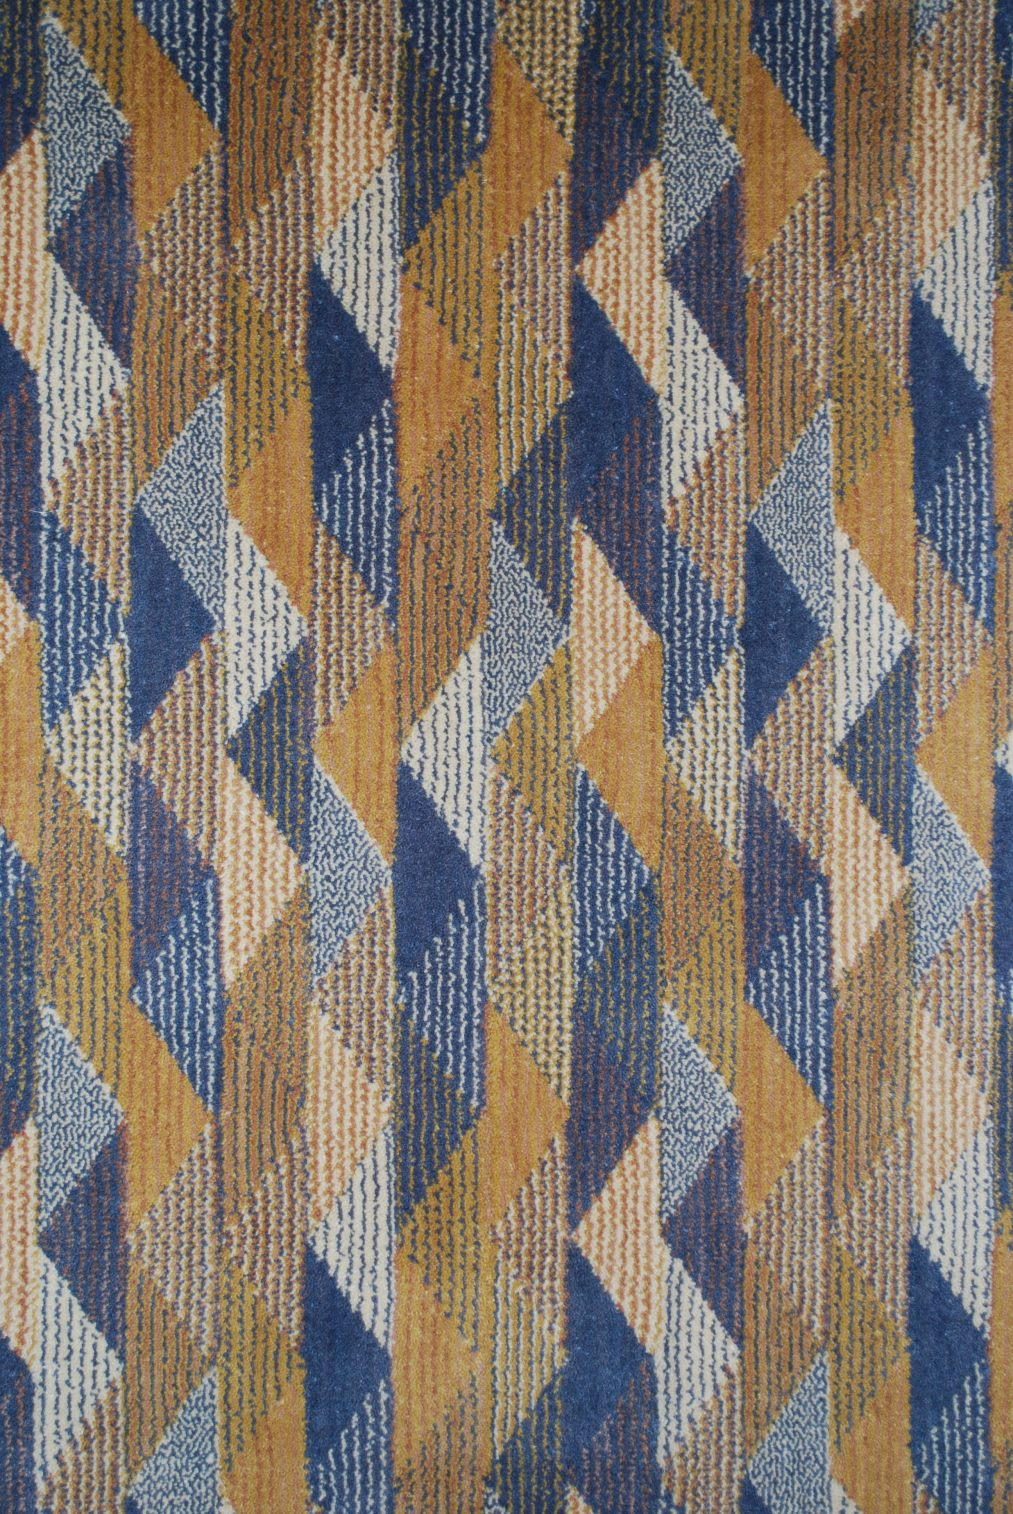 LUXE WOOLS MISSONI Makes Carpet  Best Flooring Choices